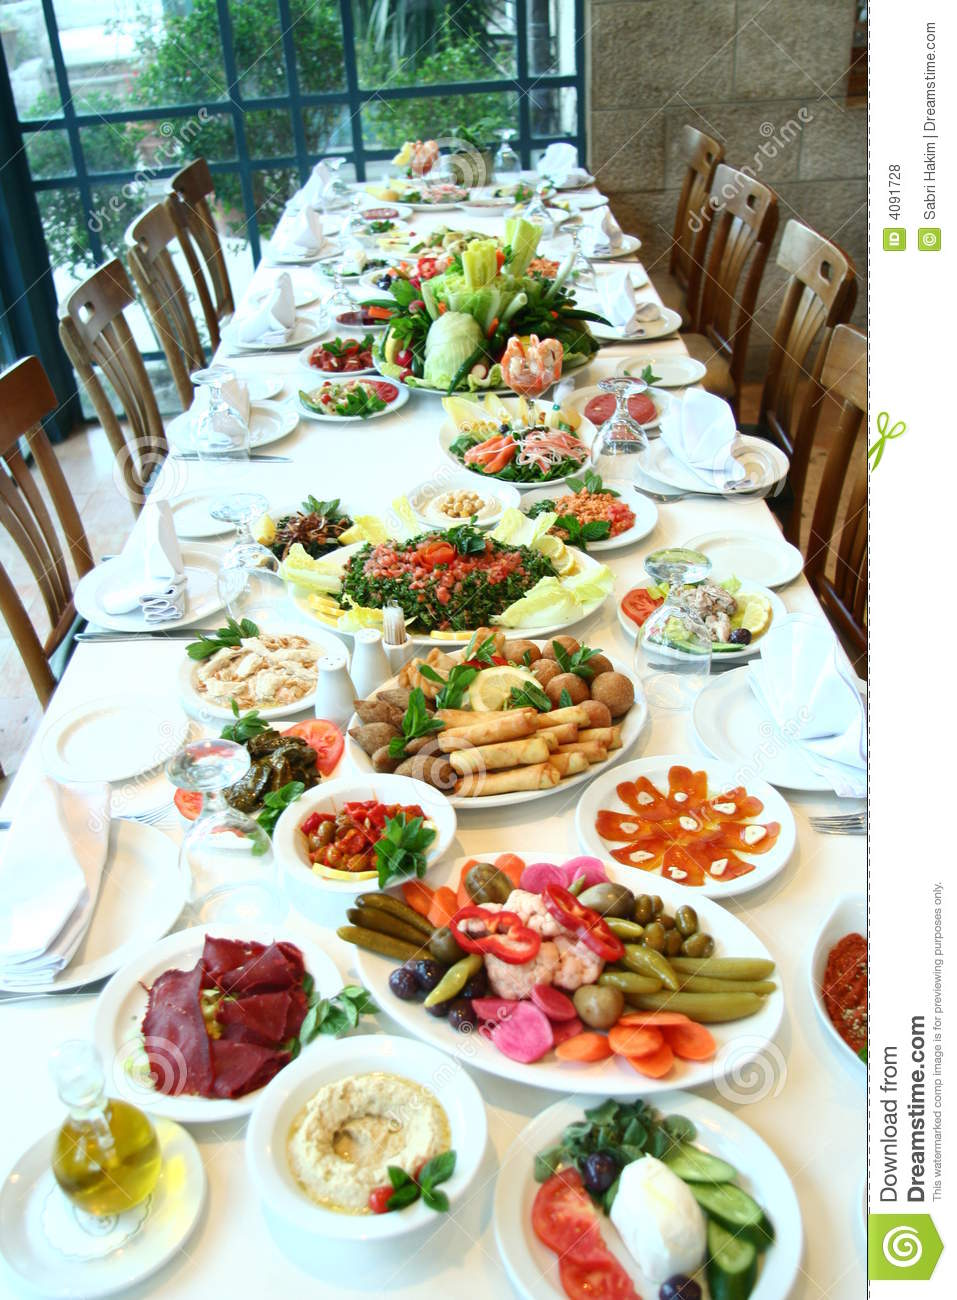 Table full of food stock photo. Image of delicious, dish